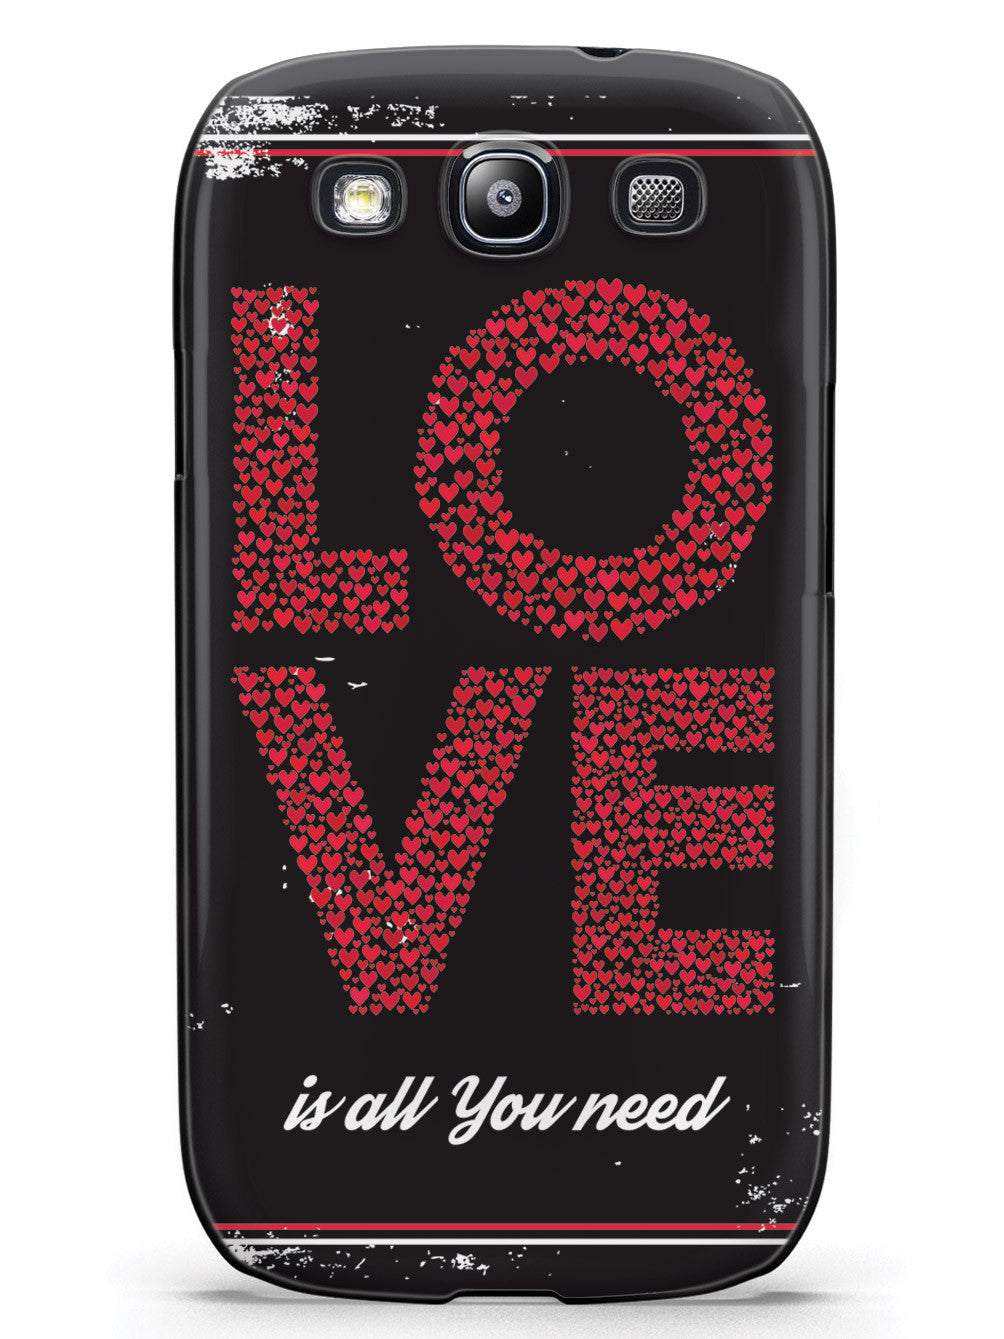 Love is all you need - Red Hearts - Black Case